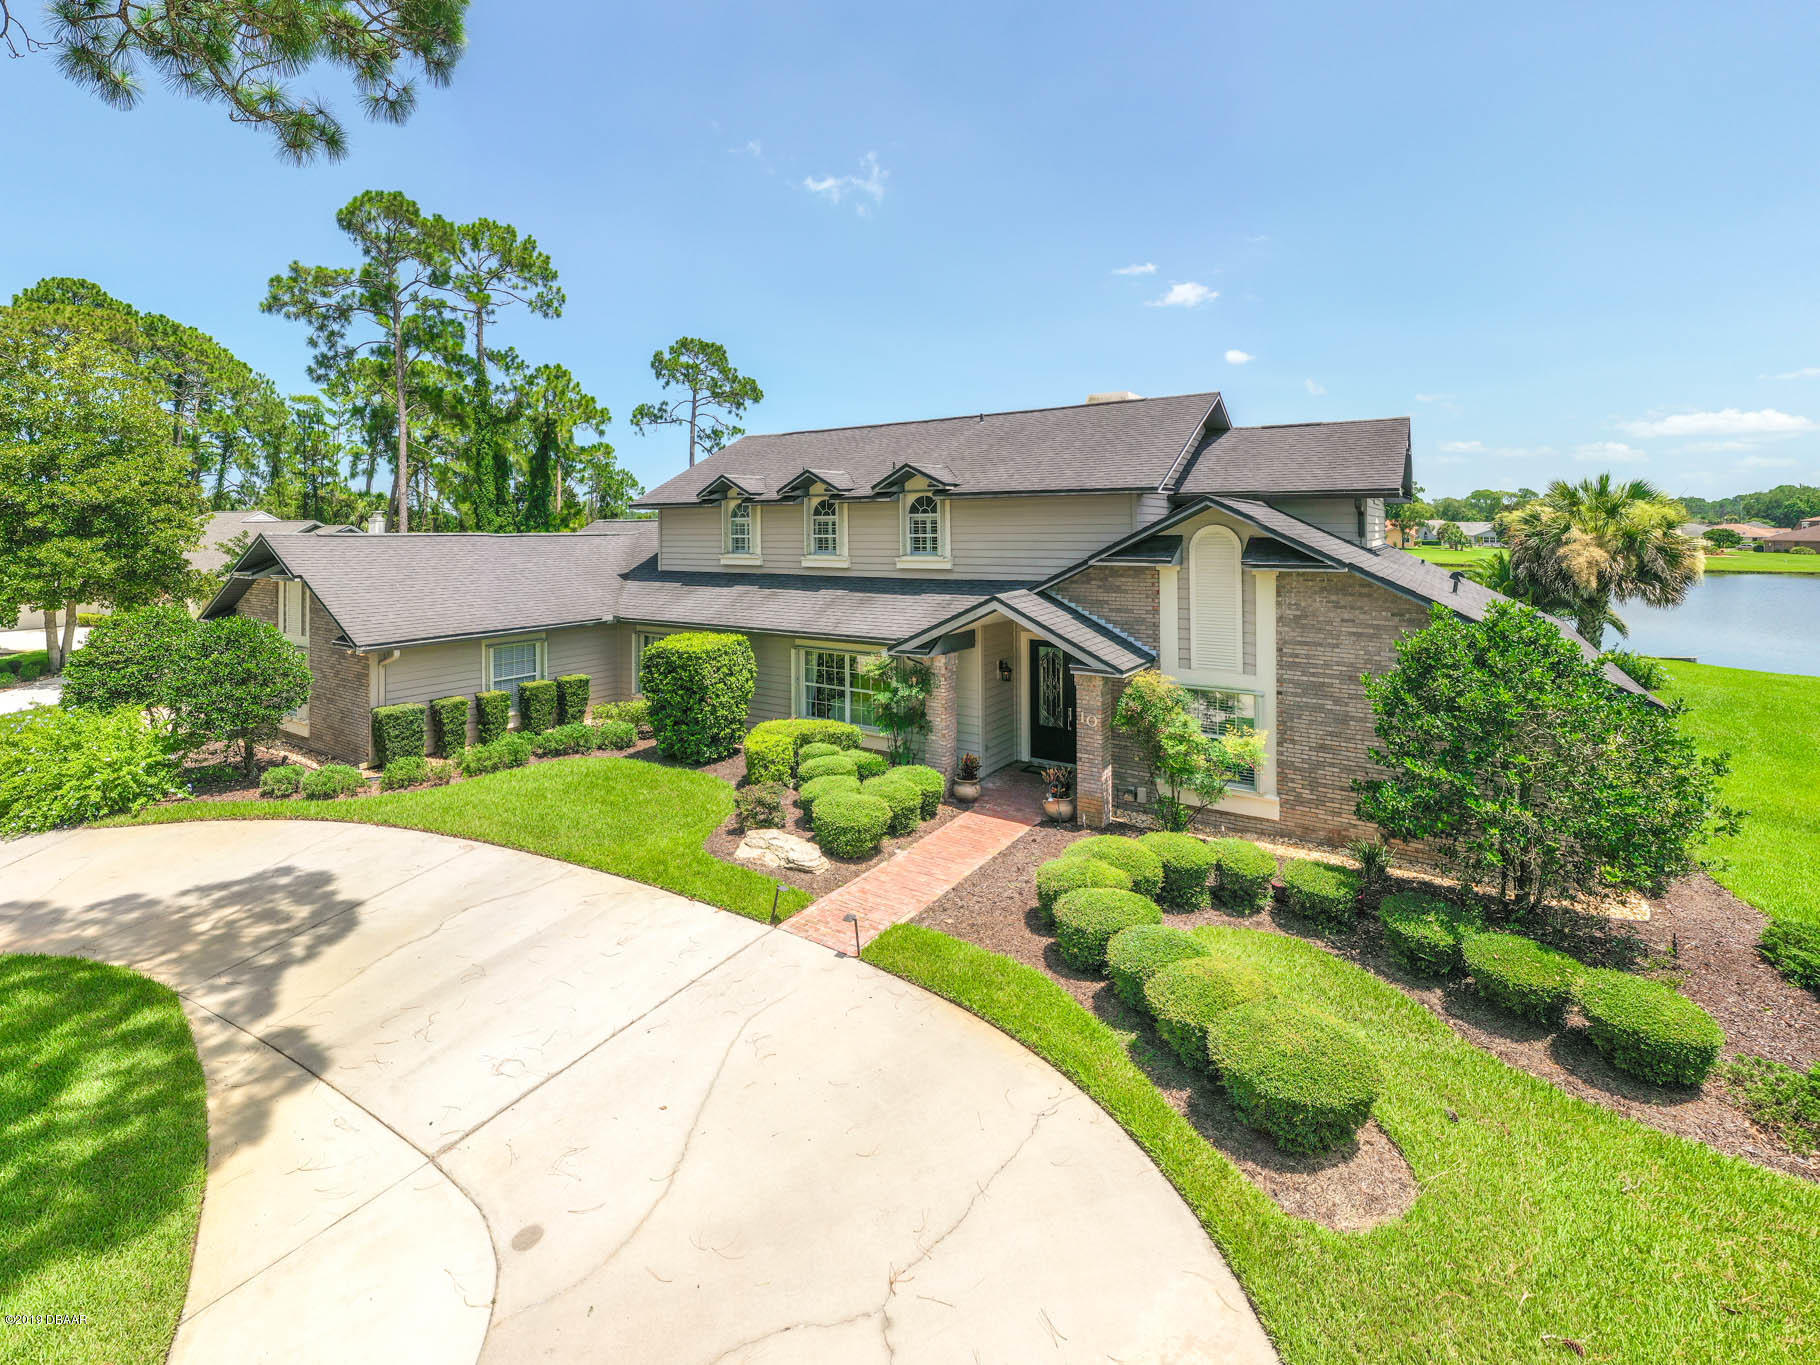 Photo of 10 Magnolia Lane, Ormond Beach, FL 32174